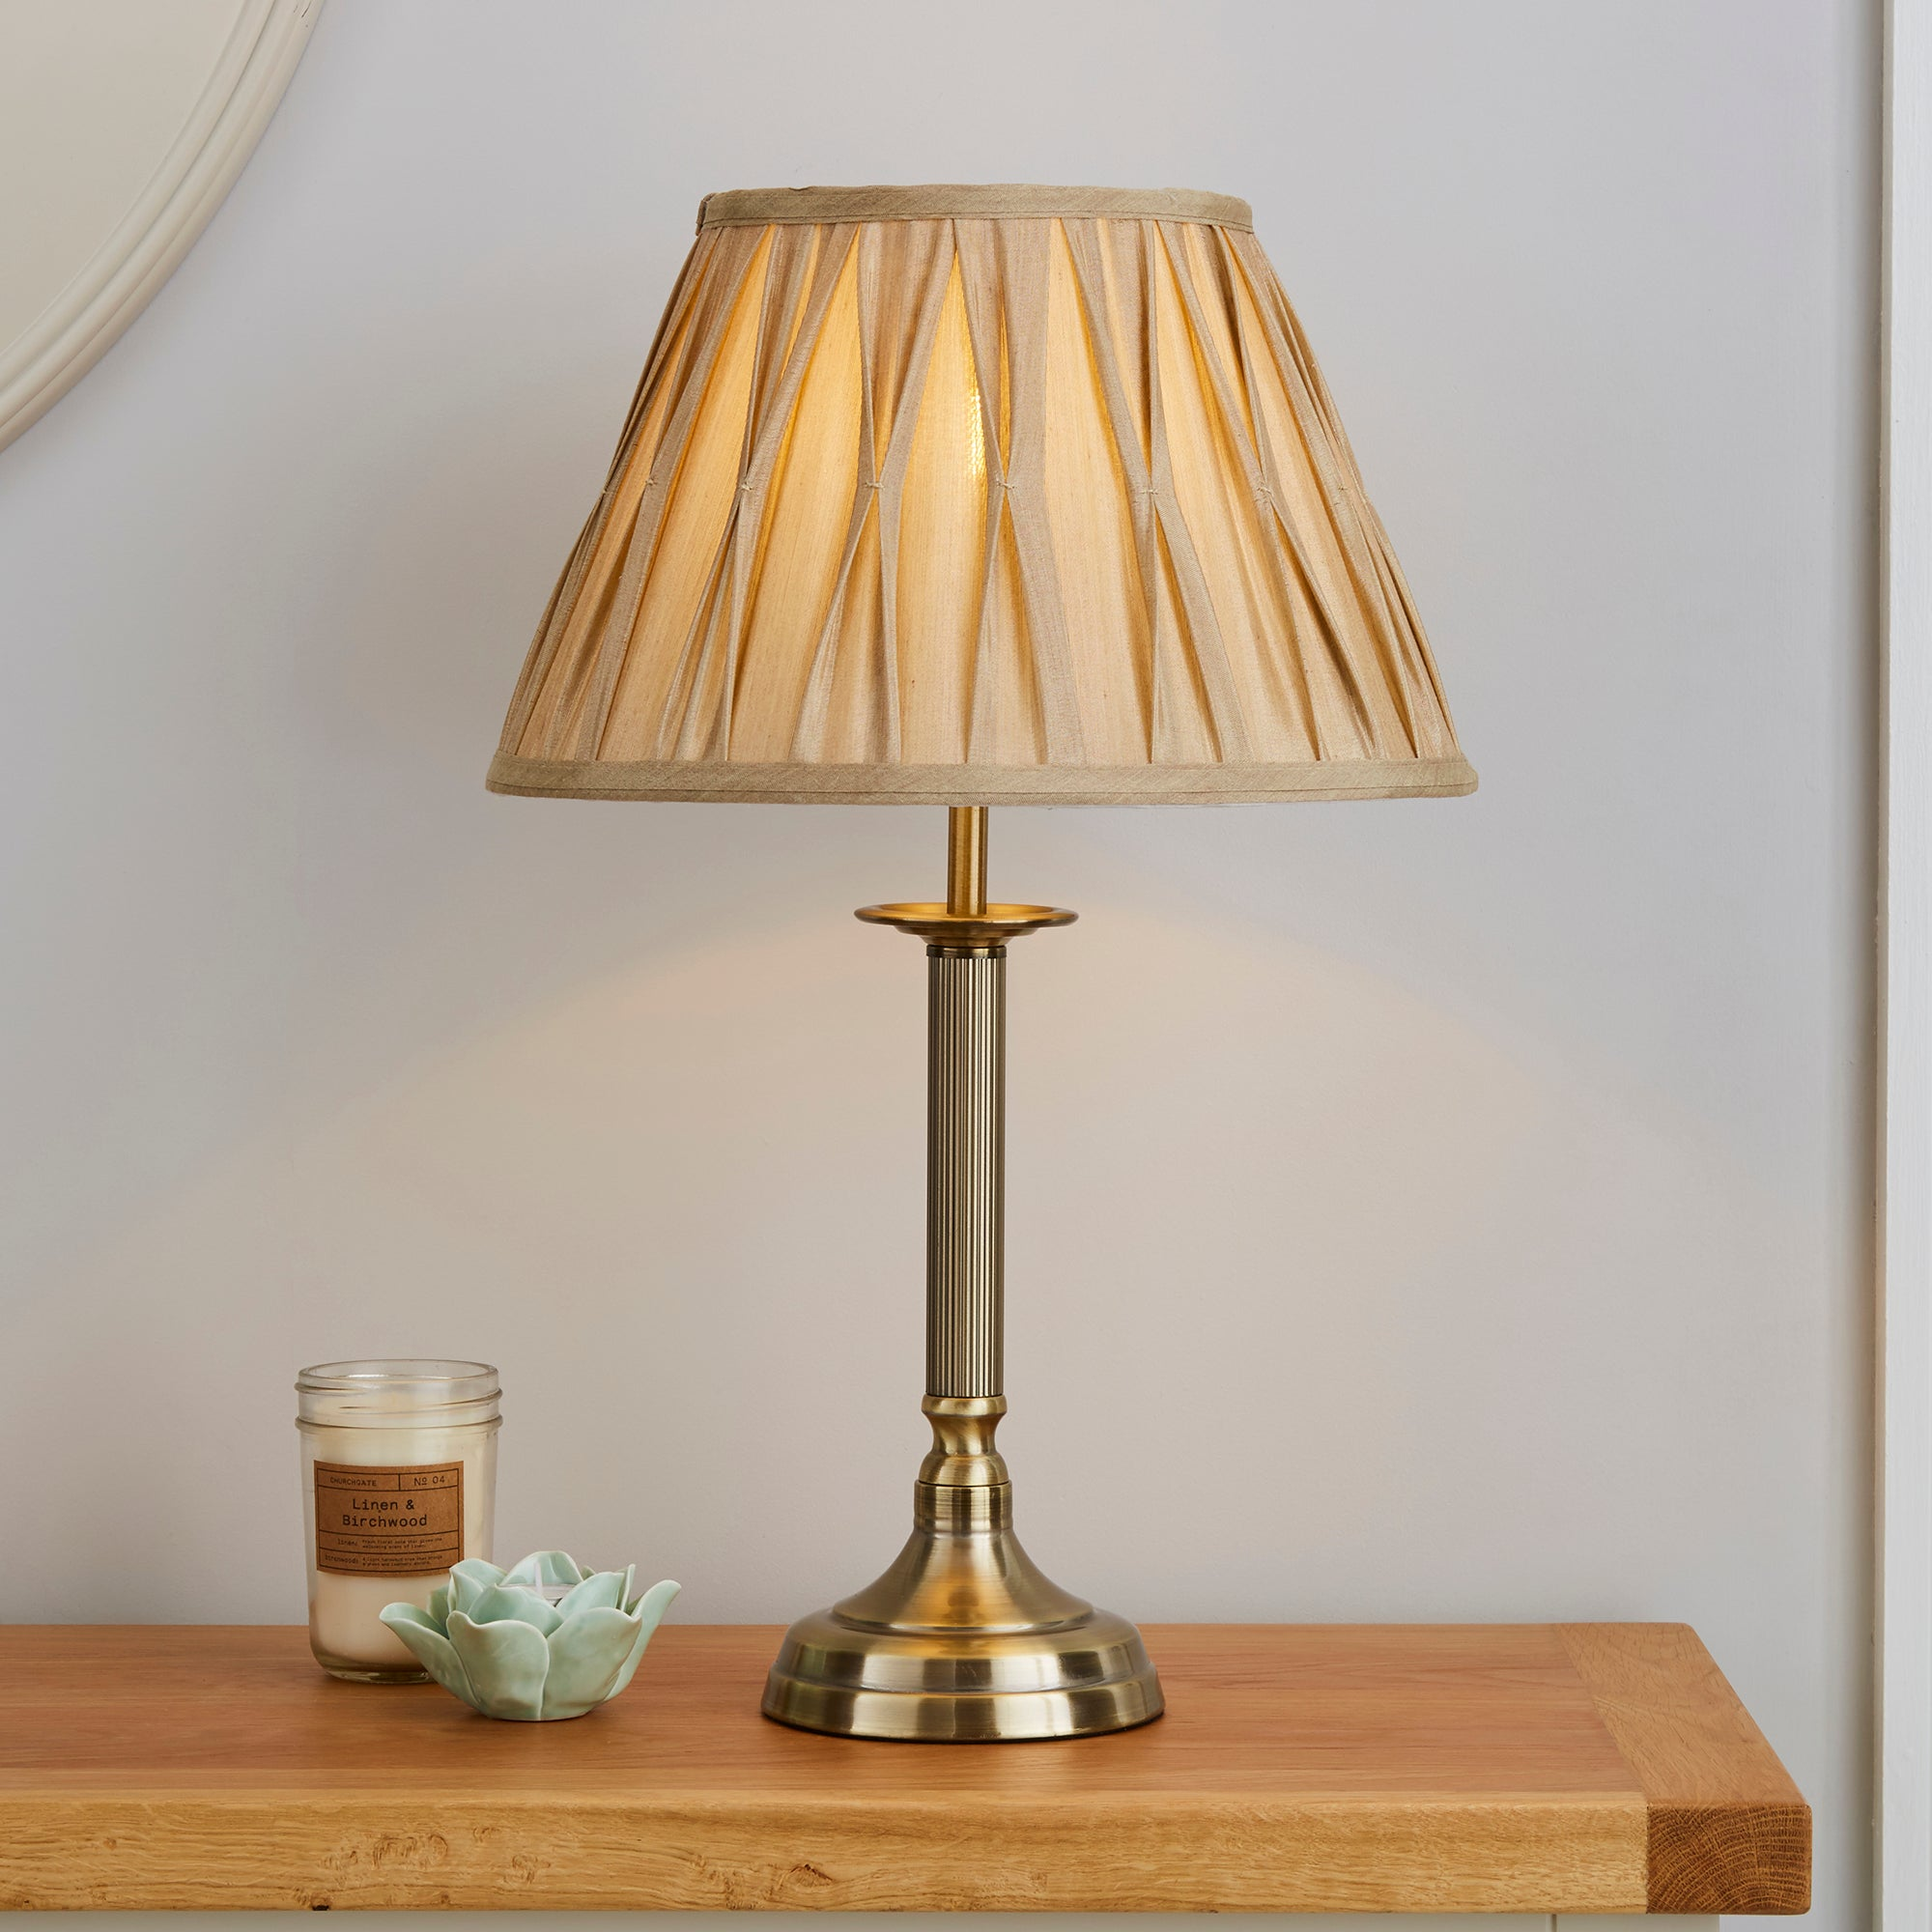 Bnwt Shabby Chic Vintage Ornate Pinch Pleat Table Lamp